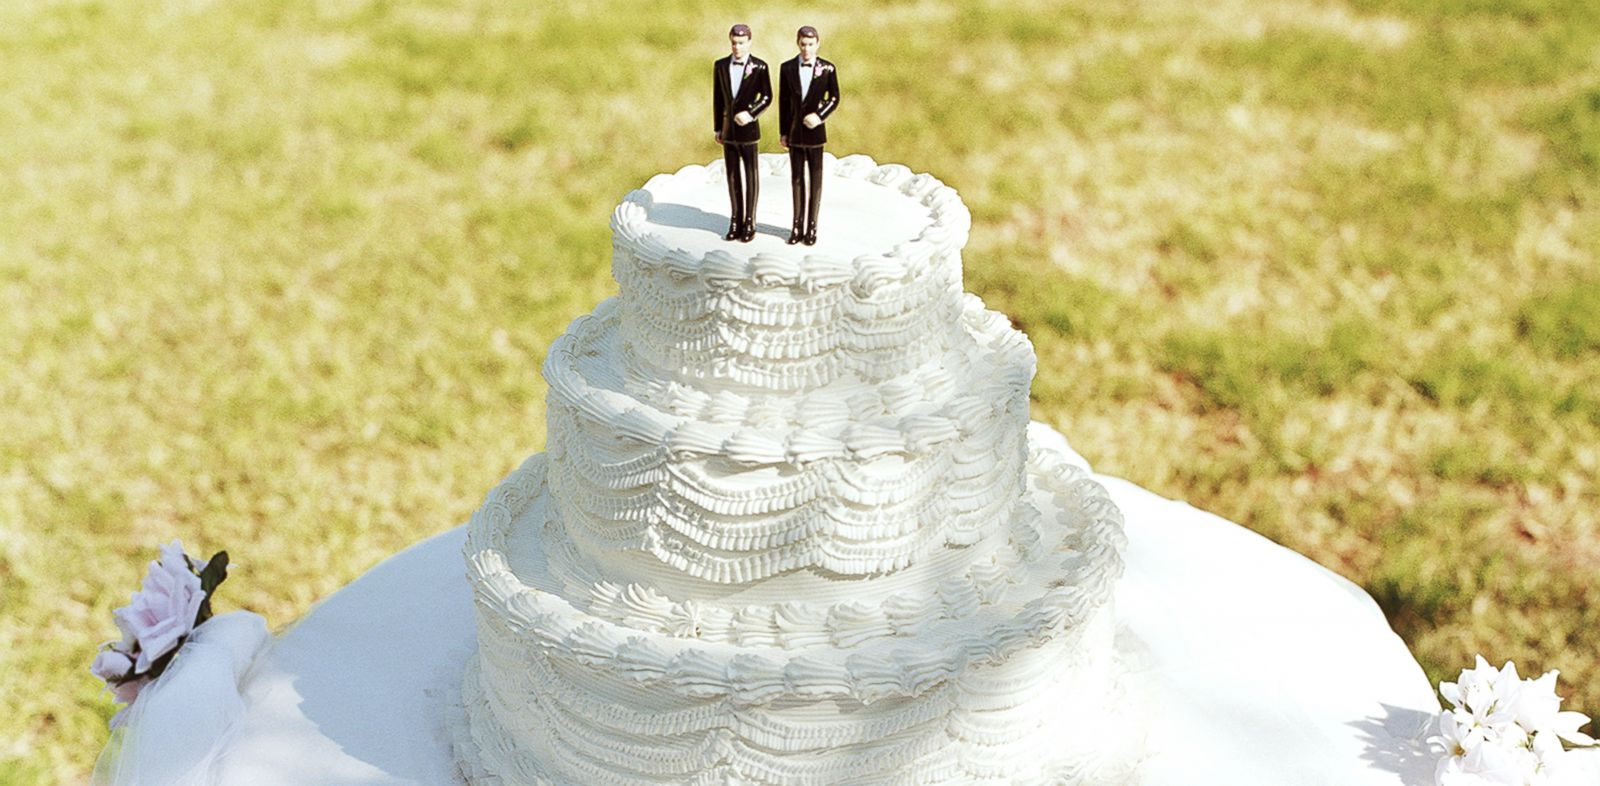 PHOTO: A judge orders a cake-maker to serve gay couples.